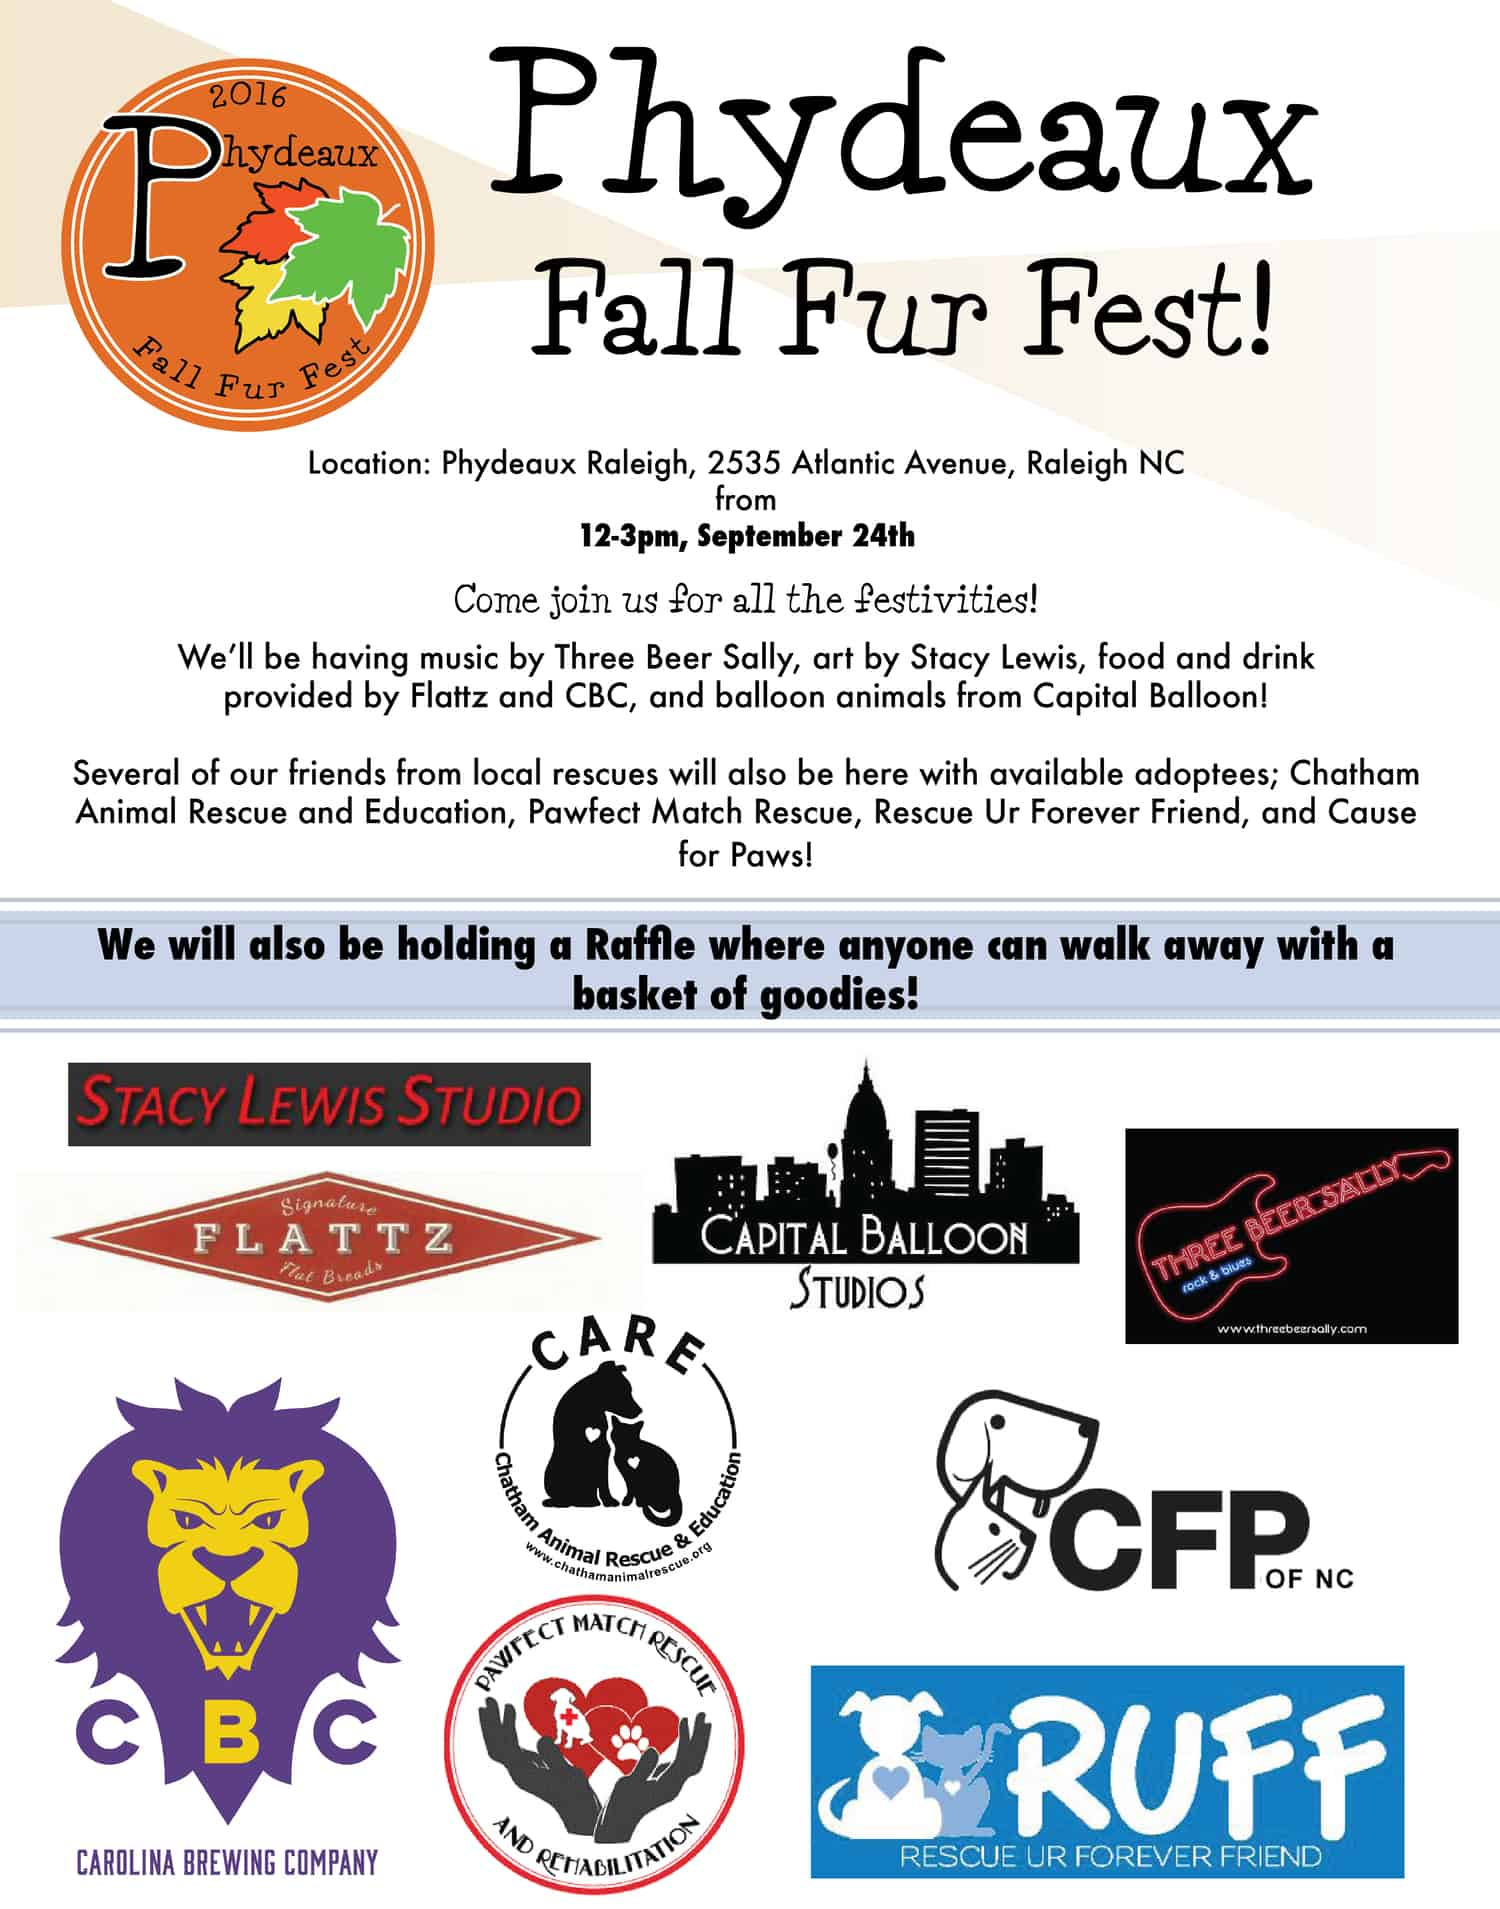 phydeaux-fall-fur-fest-poster